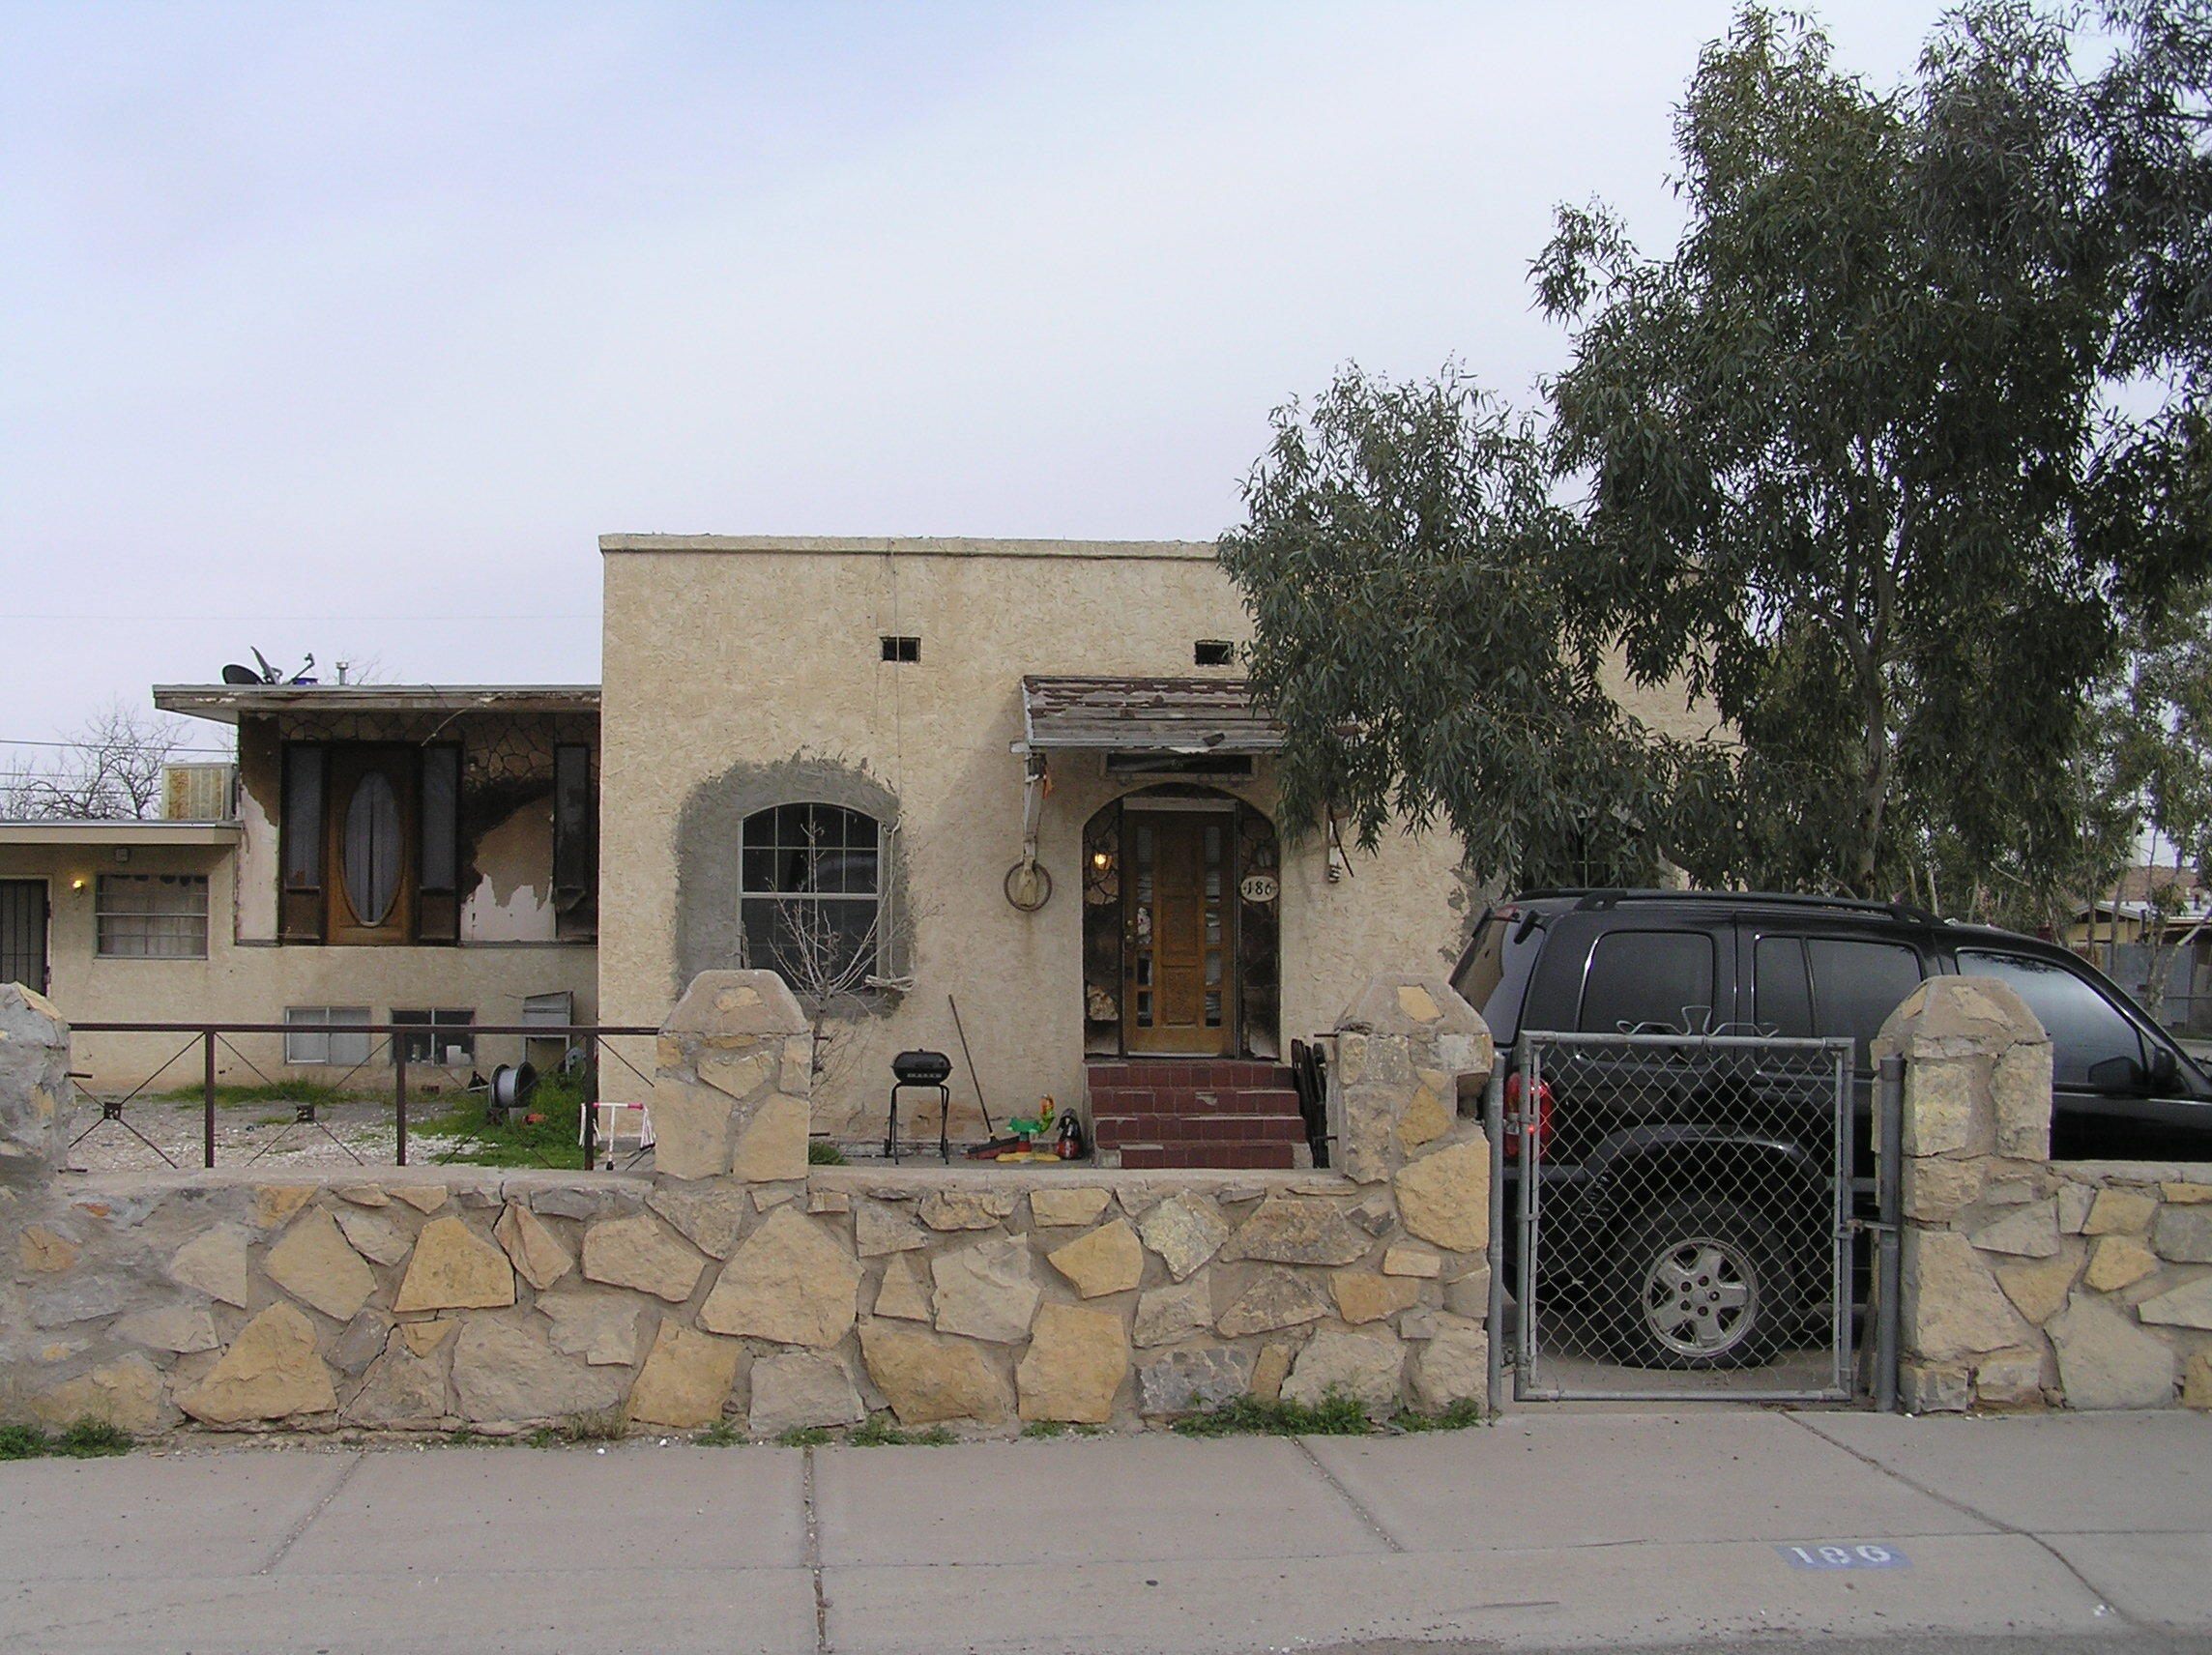 186 S.Collingsworth ST, El Paso, Texas 79905, 4 Bedrooms Bedrooms, ,3 BathroomsBathrooms,Residential,For sale,S.Collingsworth ST,823933